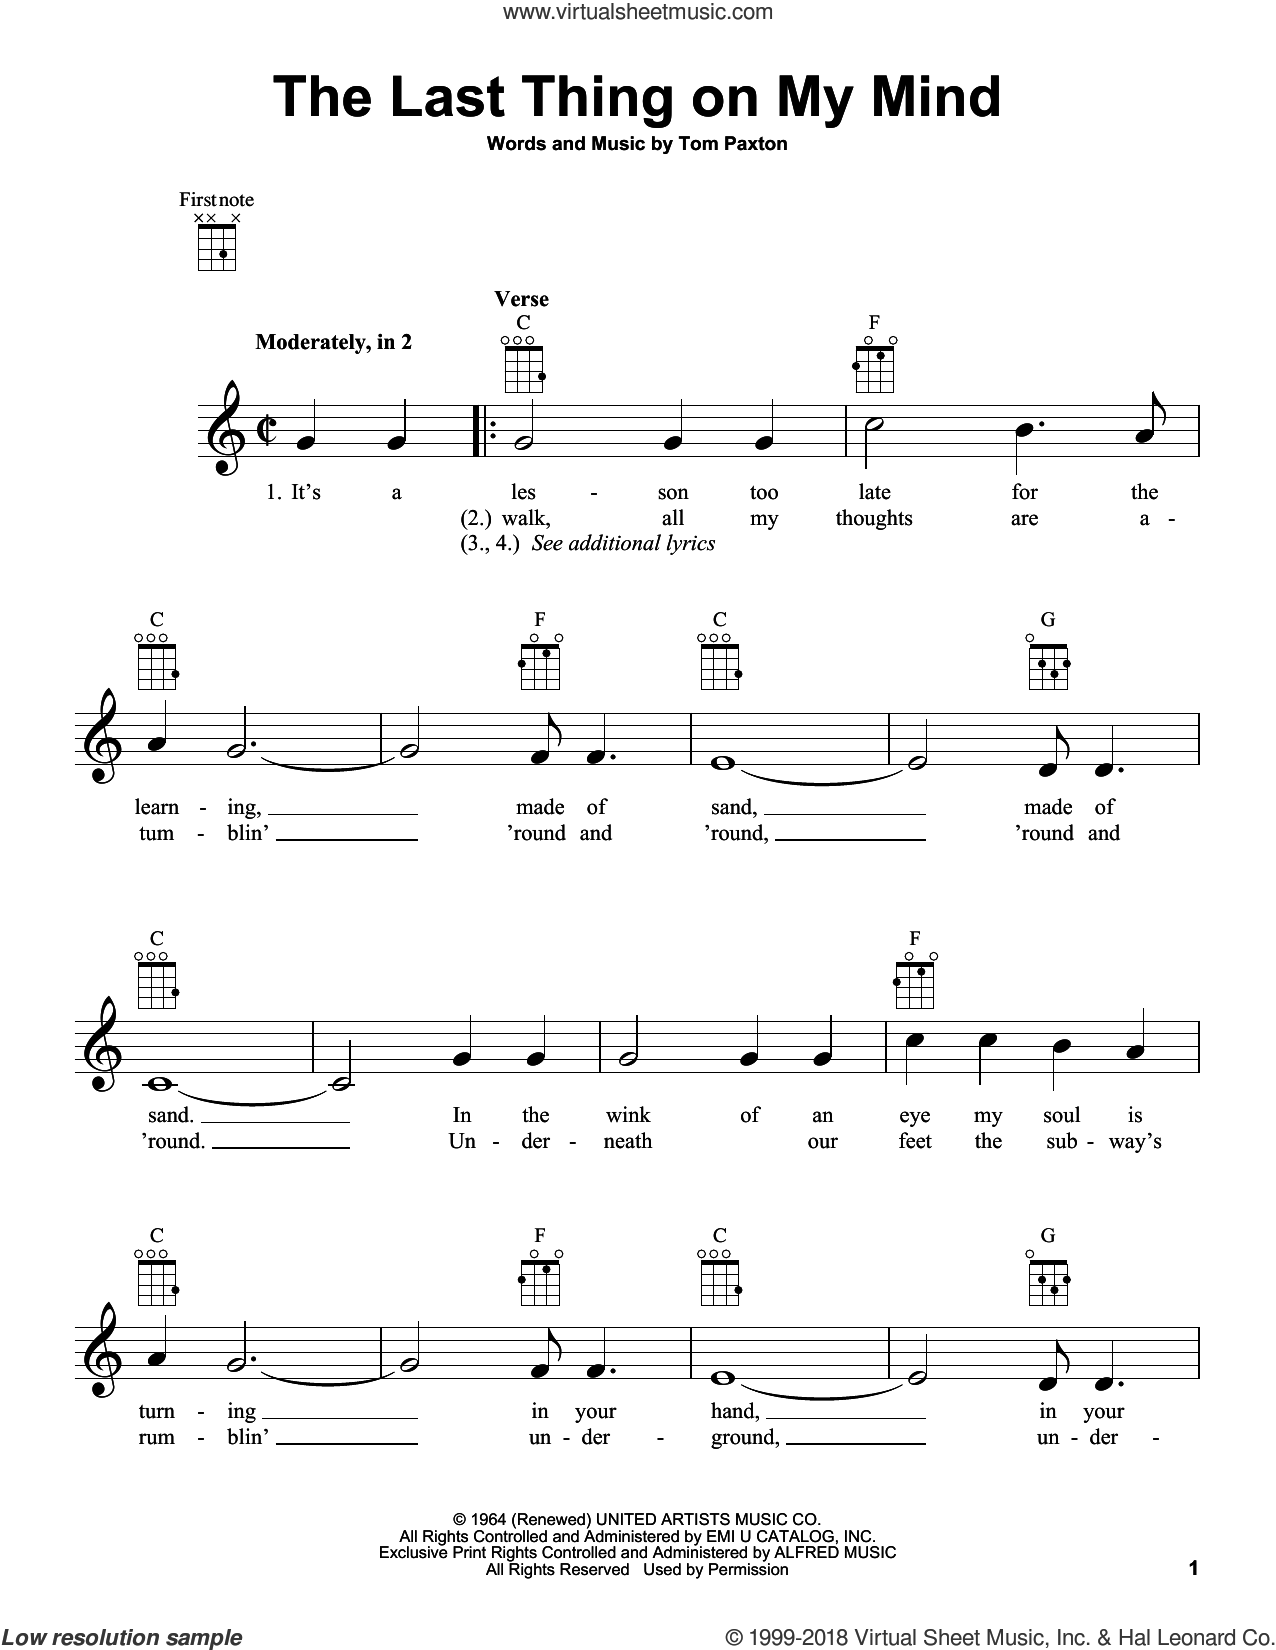 The Last Thing On My Mind sheet music for ukulele by Tom Paxton, intermediate skill level